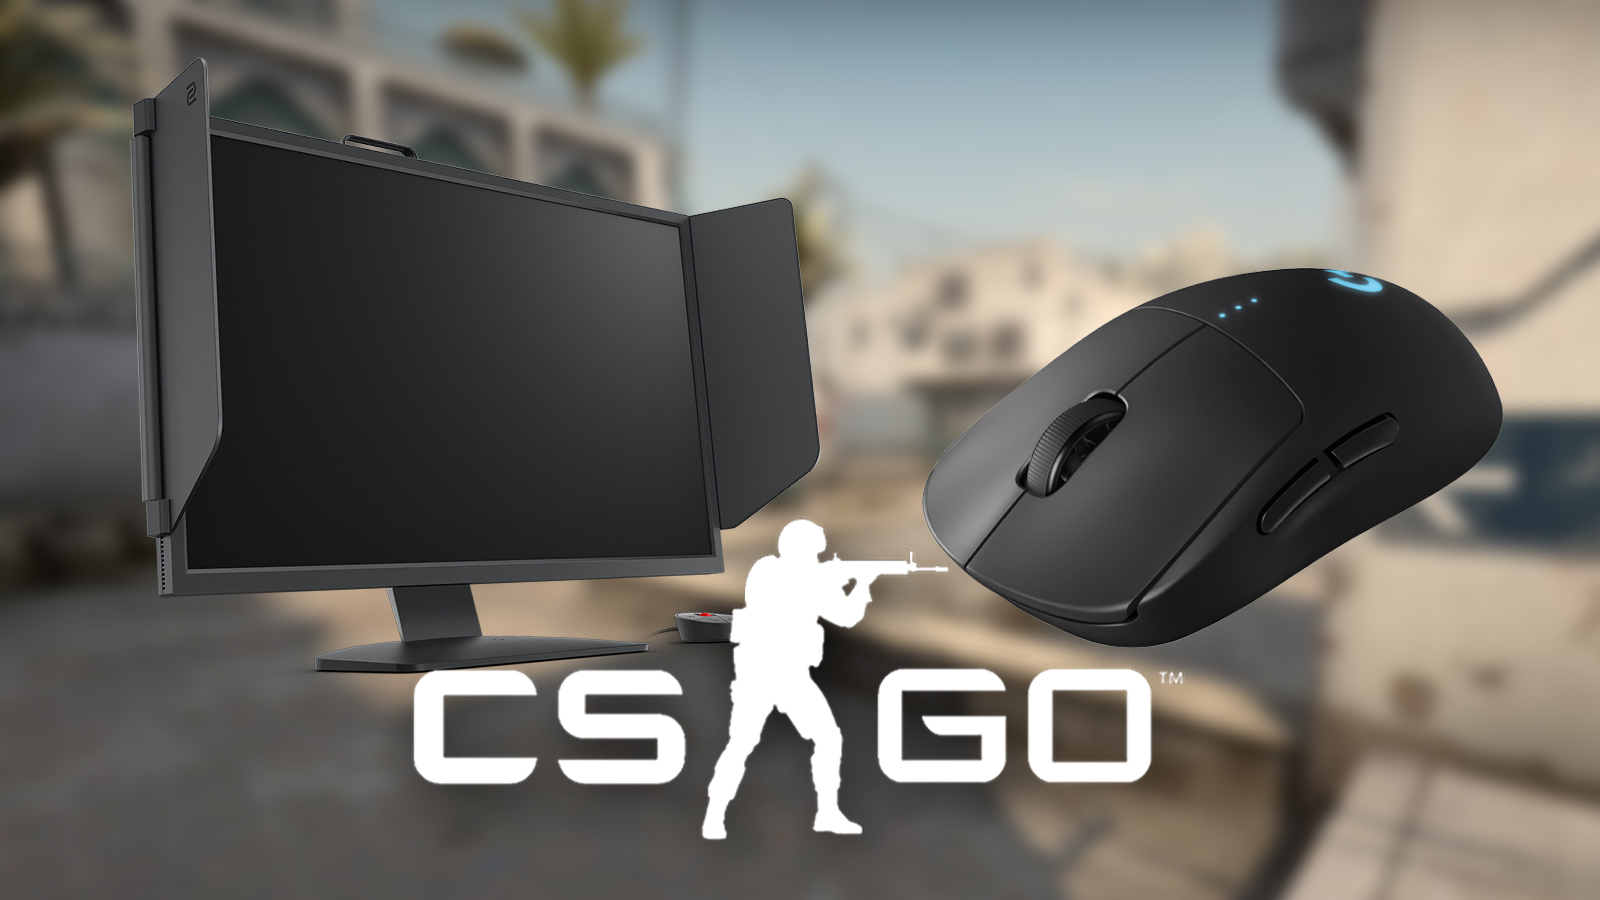 csgo best mouse keyboard monitor